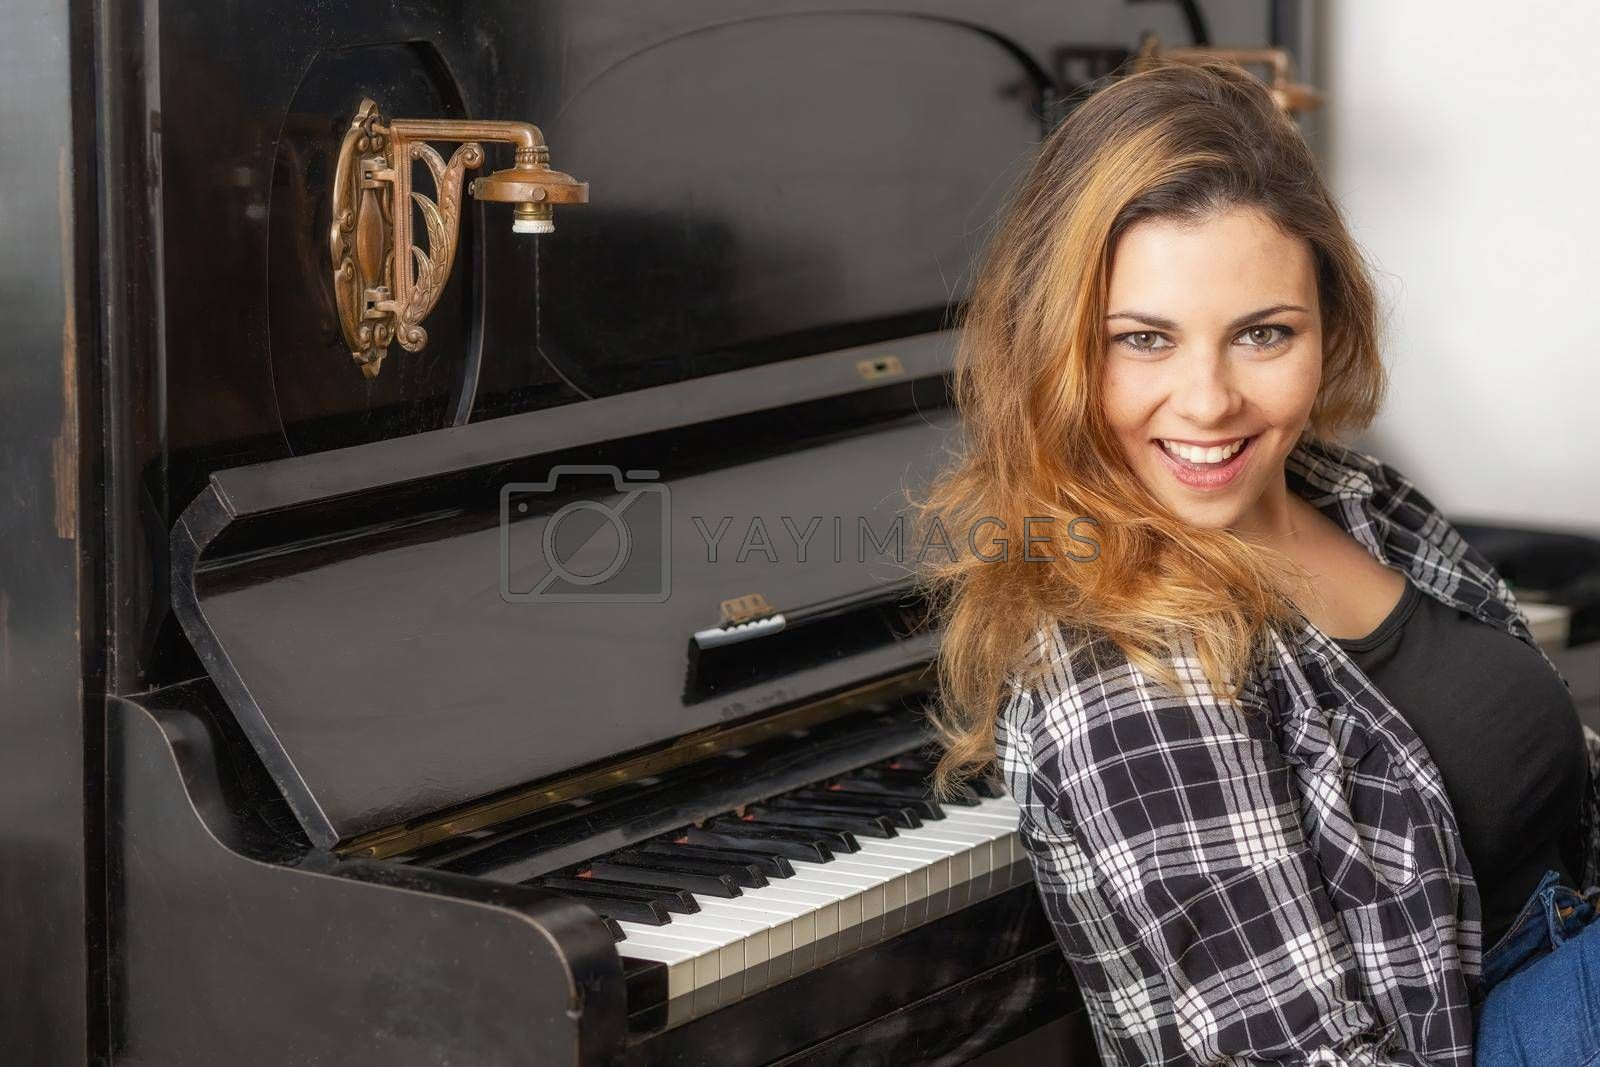 Royalty free image of Portrait of attractive young woman posing at the piano. by Frank11